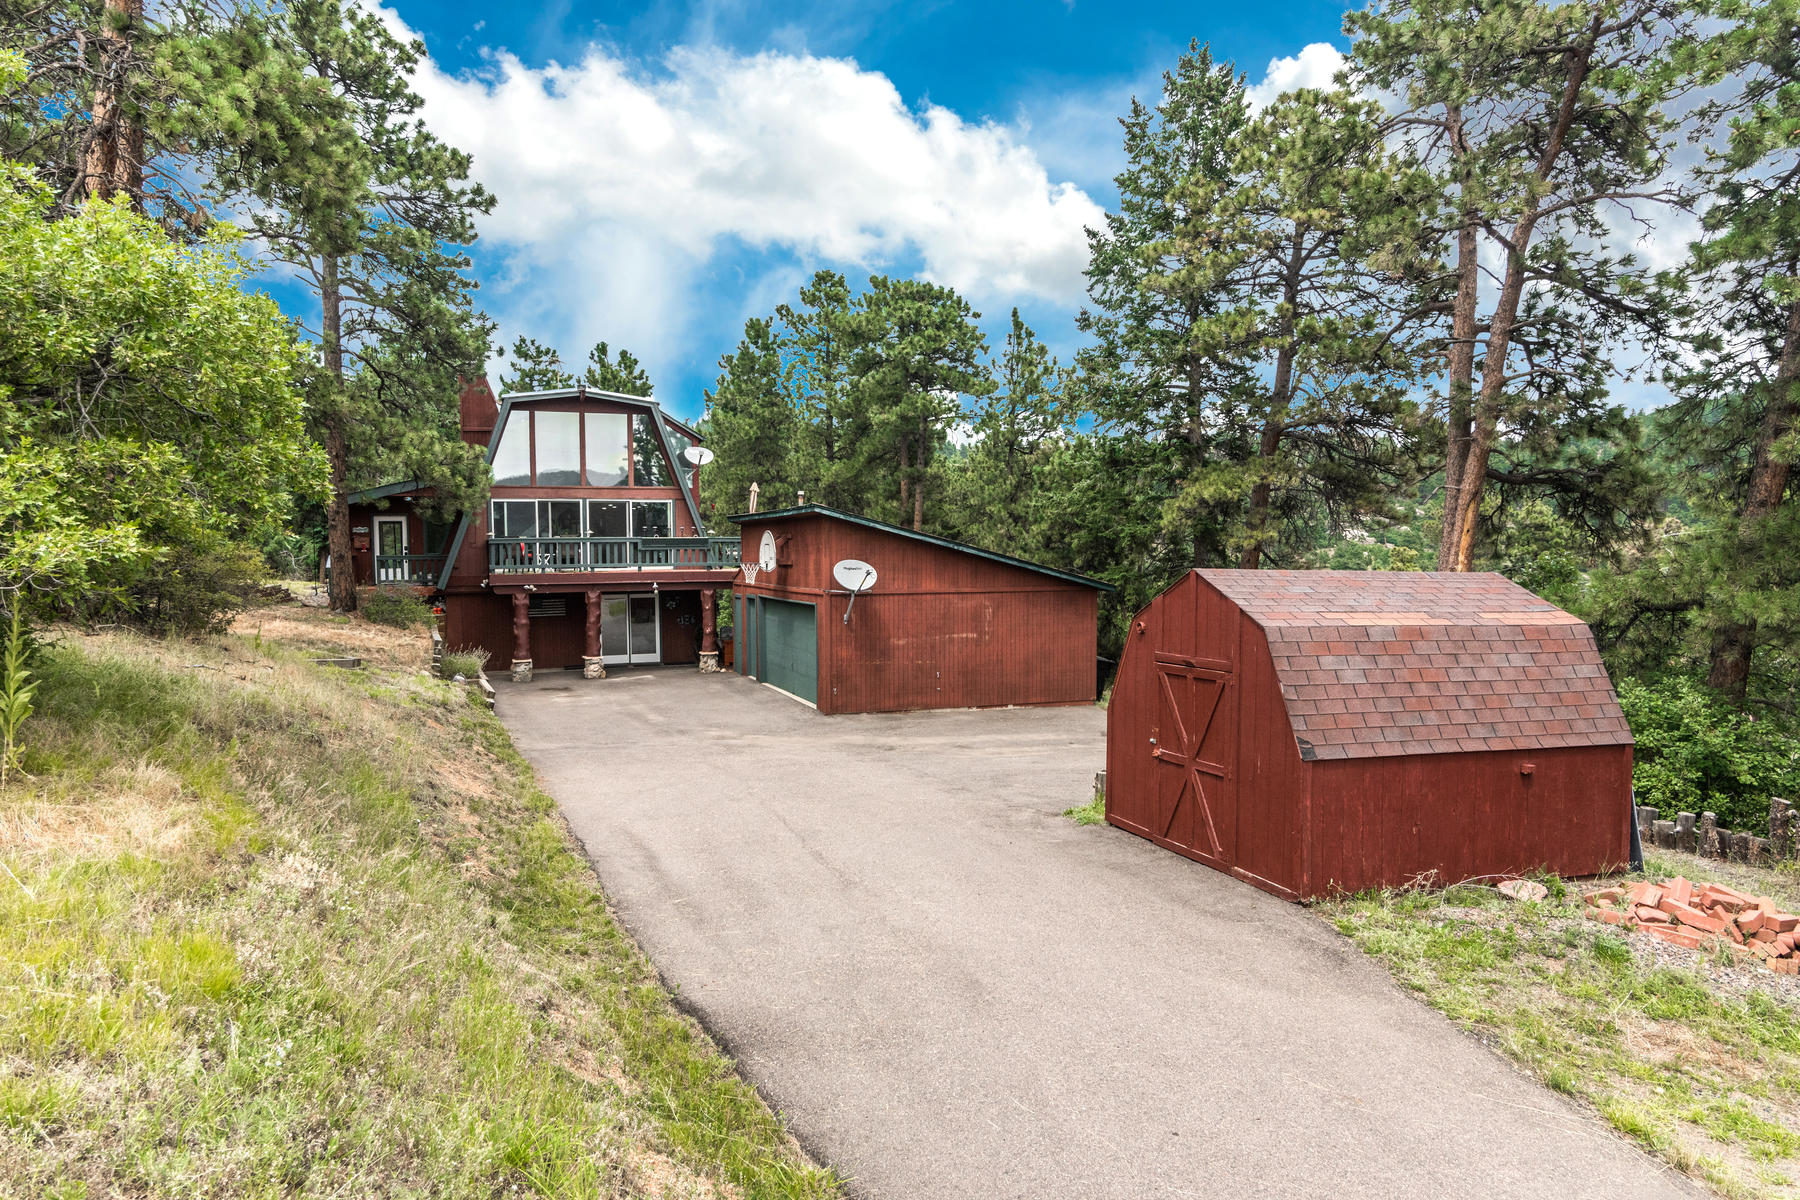 Single Family Homes for Sale at Mtn Contemporary with Captivating & Peaceful Panoramic Mtn Vistas 6396 High Drive, Morrison, Colorado 80465 United States